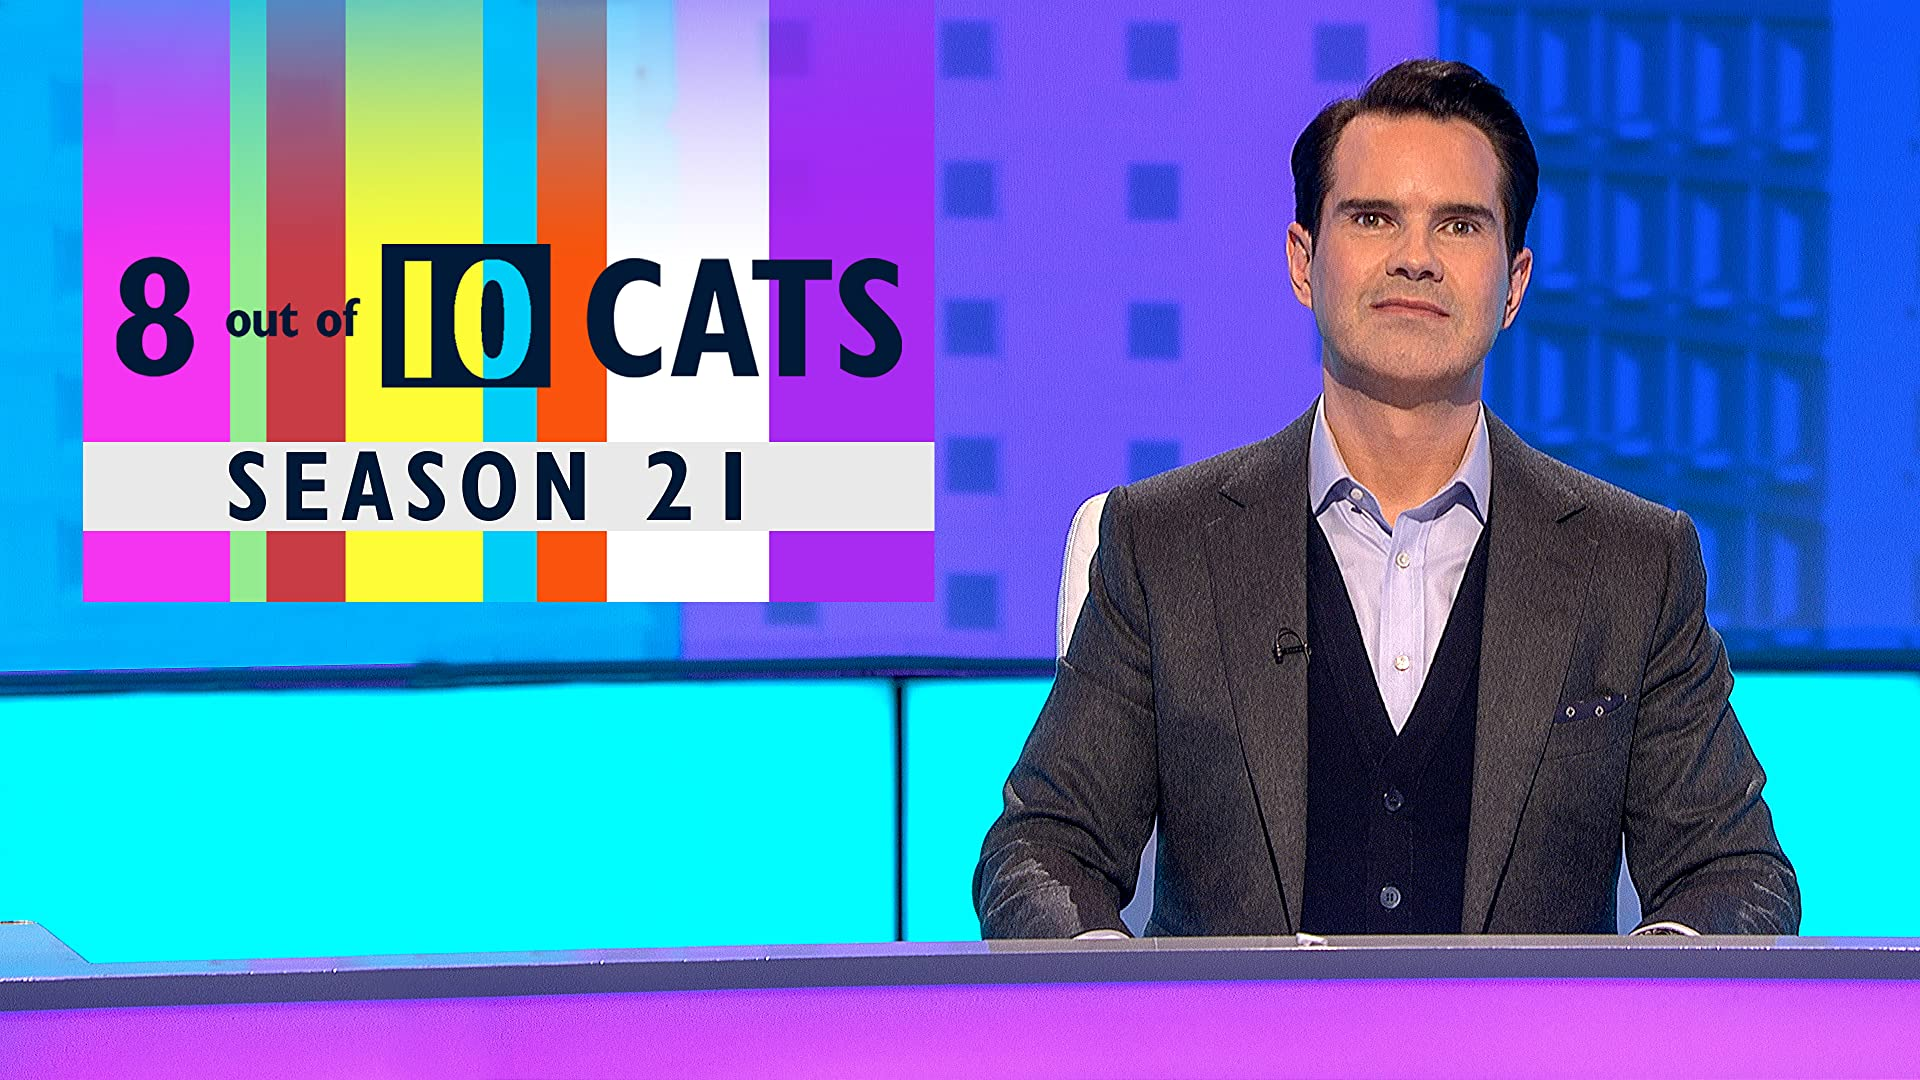 8 Out of 10 Cats, Season 21